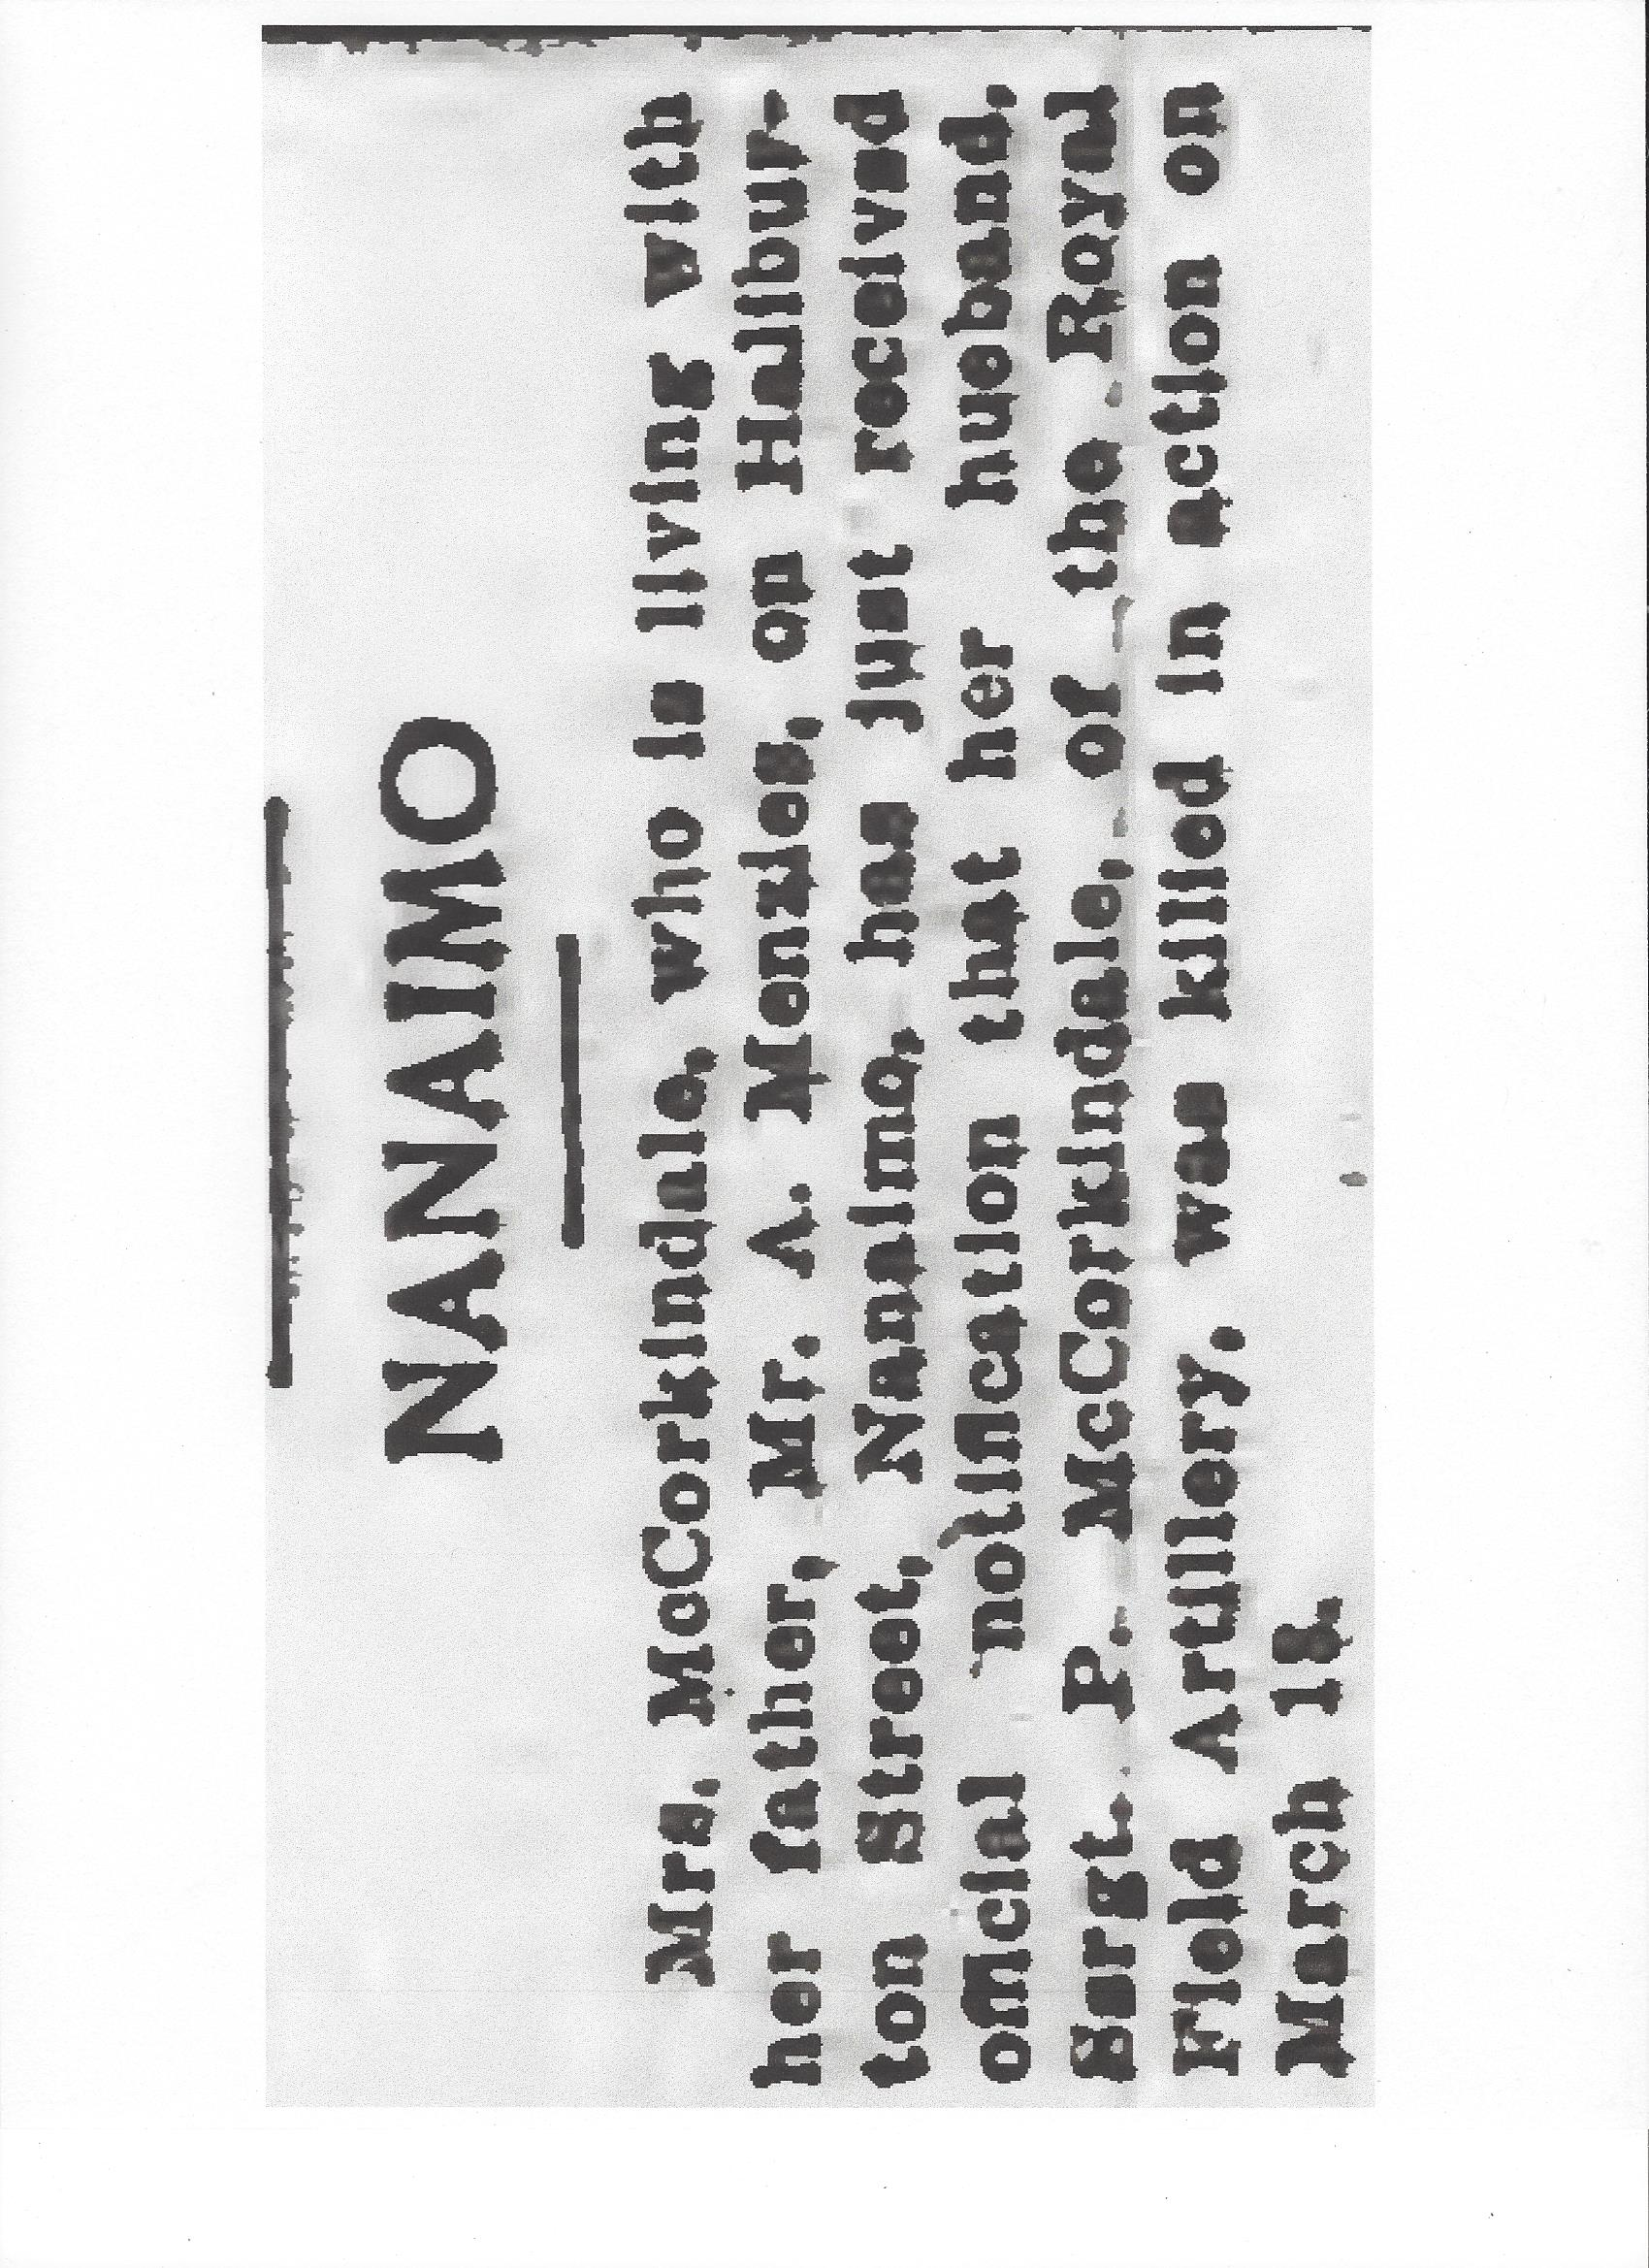 Newspaper clipping– From the Daily Colonist of April 1, 1917. Image taken from web address of http://archive.org/stream/dailycolonist59y96uvic#page/n0/mode/1up